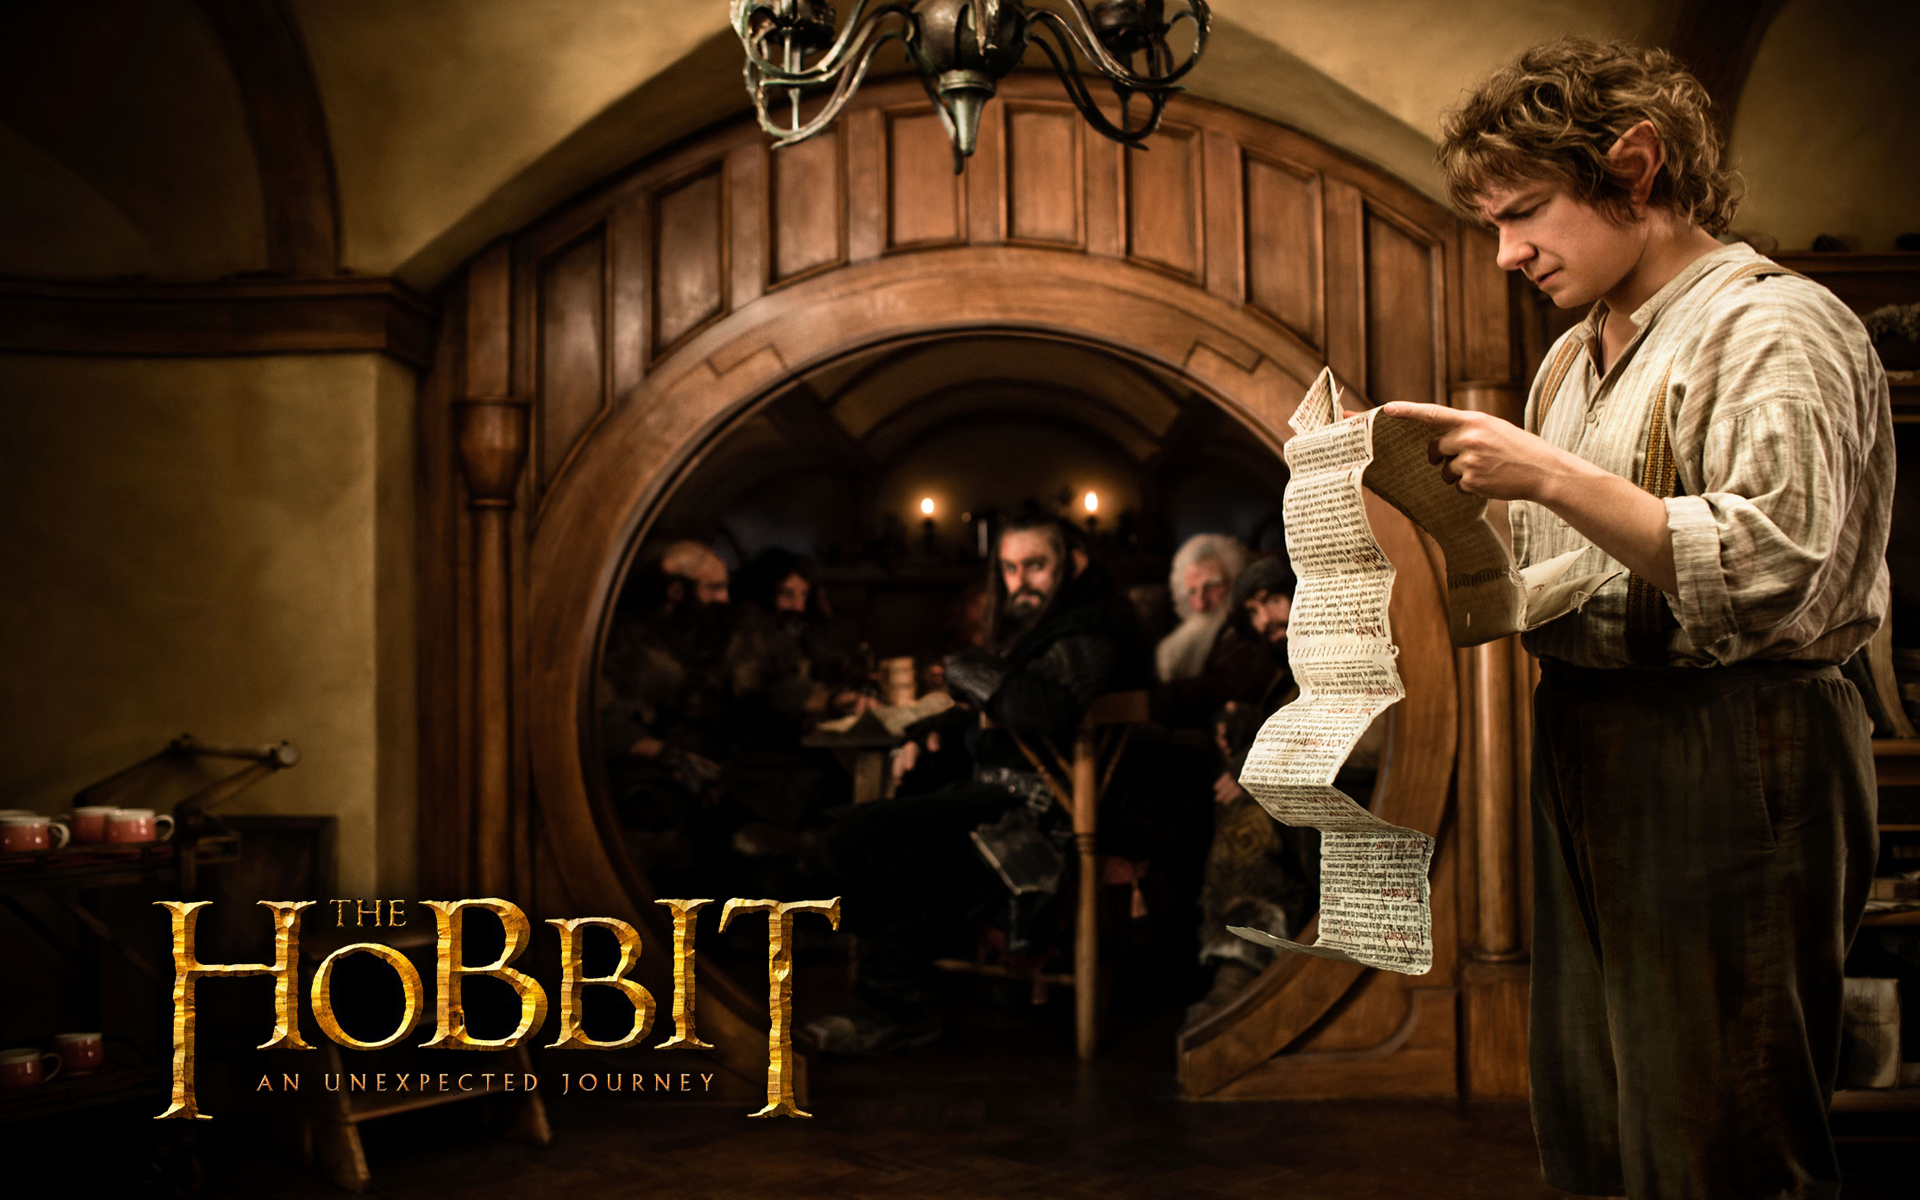 The Hobbit An Unexpected Journey HQ Wallpapers   Movie Wallpapers 1920x1200